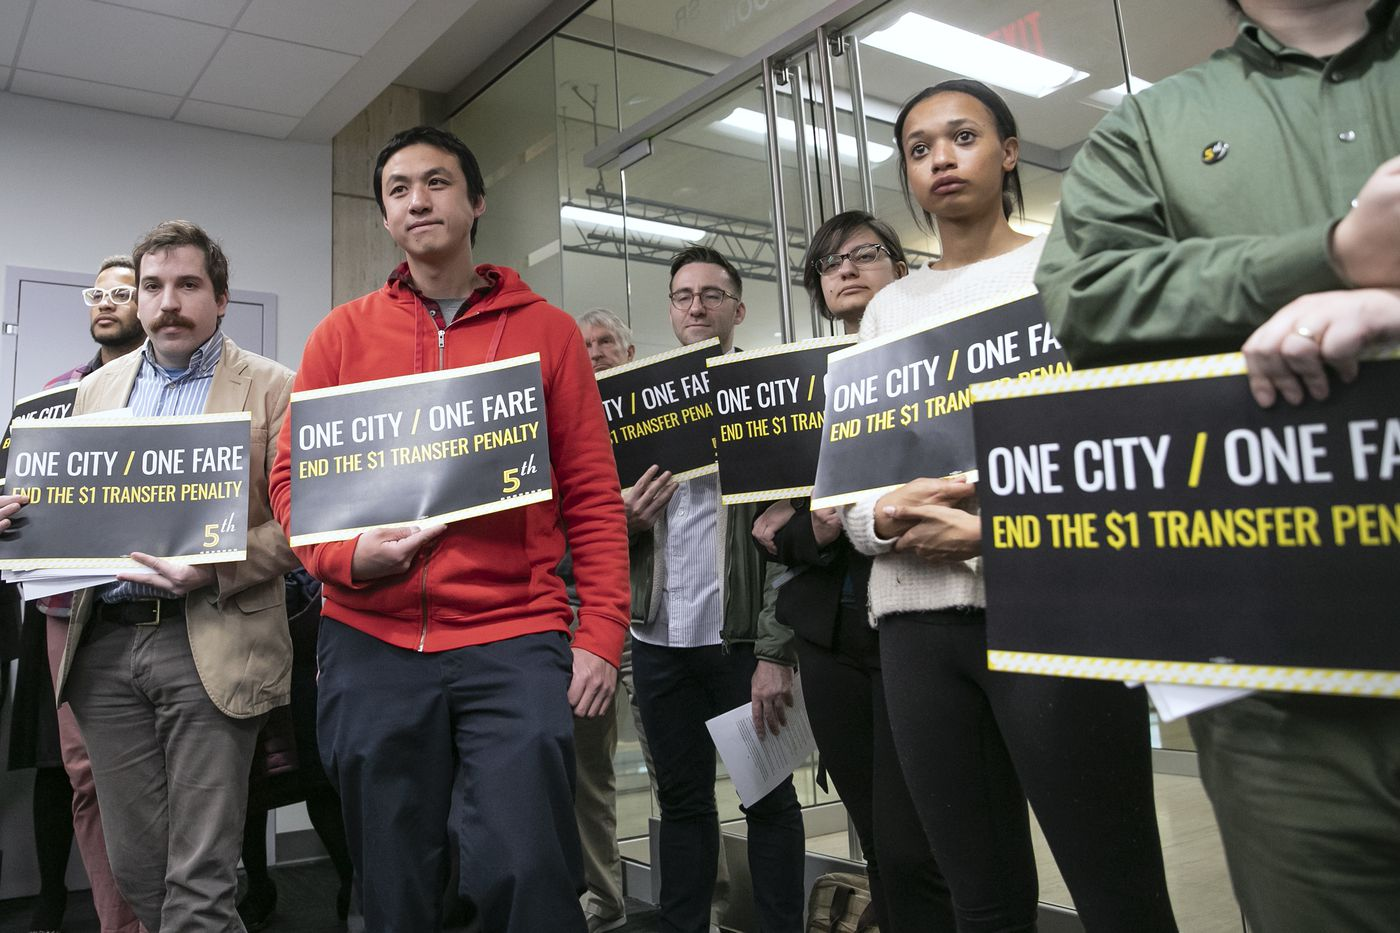 Activists from 5th Square, an urbanist political action committee, lobbied in March for fare changes at SEPTA headquarters in Center City Philadelphia.